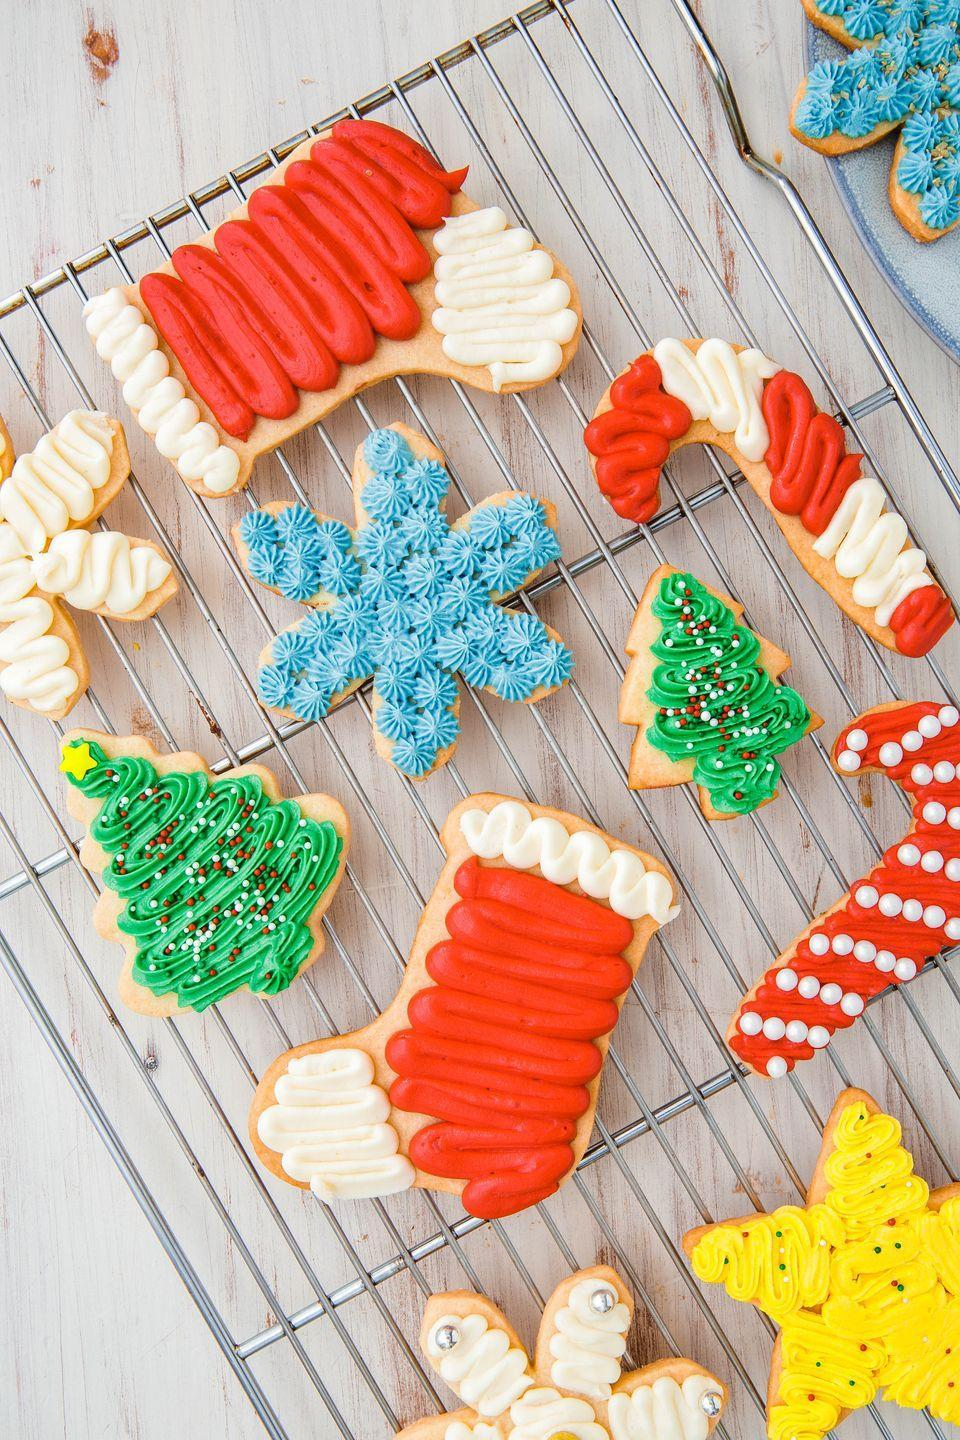 "<p>It doesn't get much more festive than this!</p><p>Get the recipe from <a href=""https://www.delish.com/cooking/recipe-ideas/recipes/a50502/basic-sugar-cookies-recipe/"" rel=""nofollow noopener"" target=""_blank"" data-ylk=""slk:Delish"" class=""link rapid-noclick-resp"">Delish</a>. </p>"